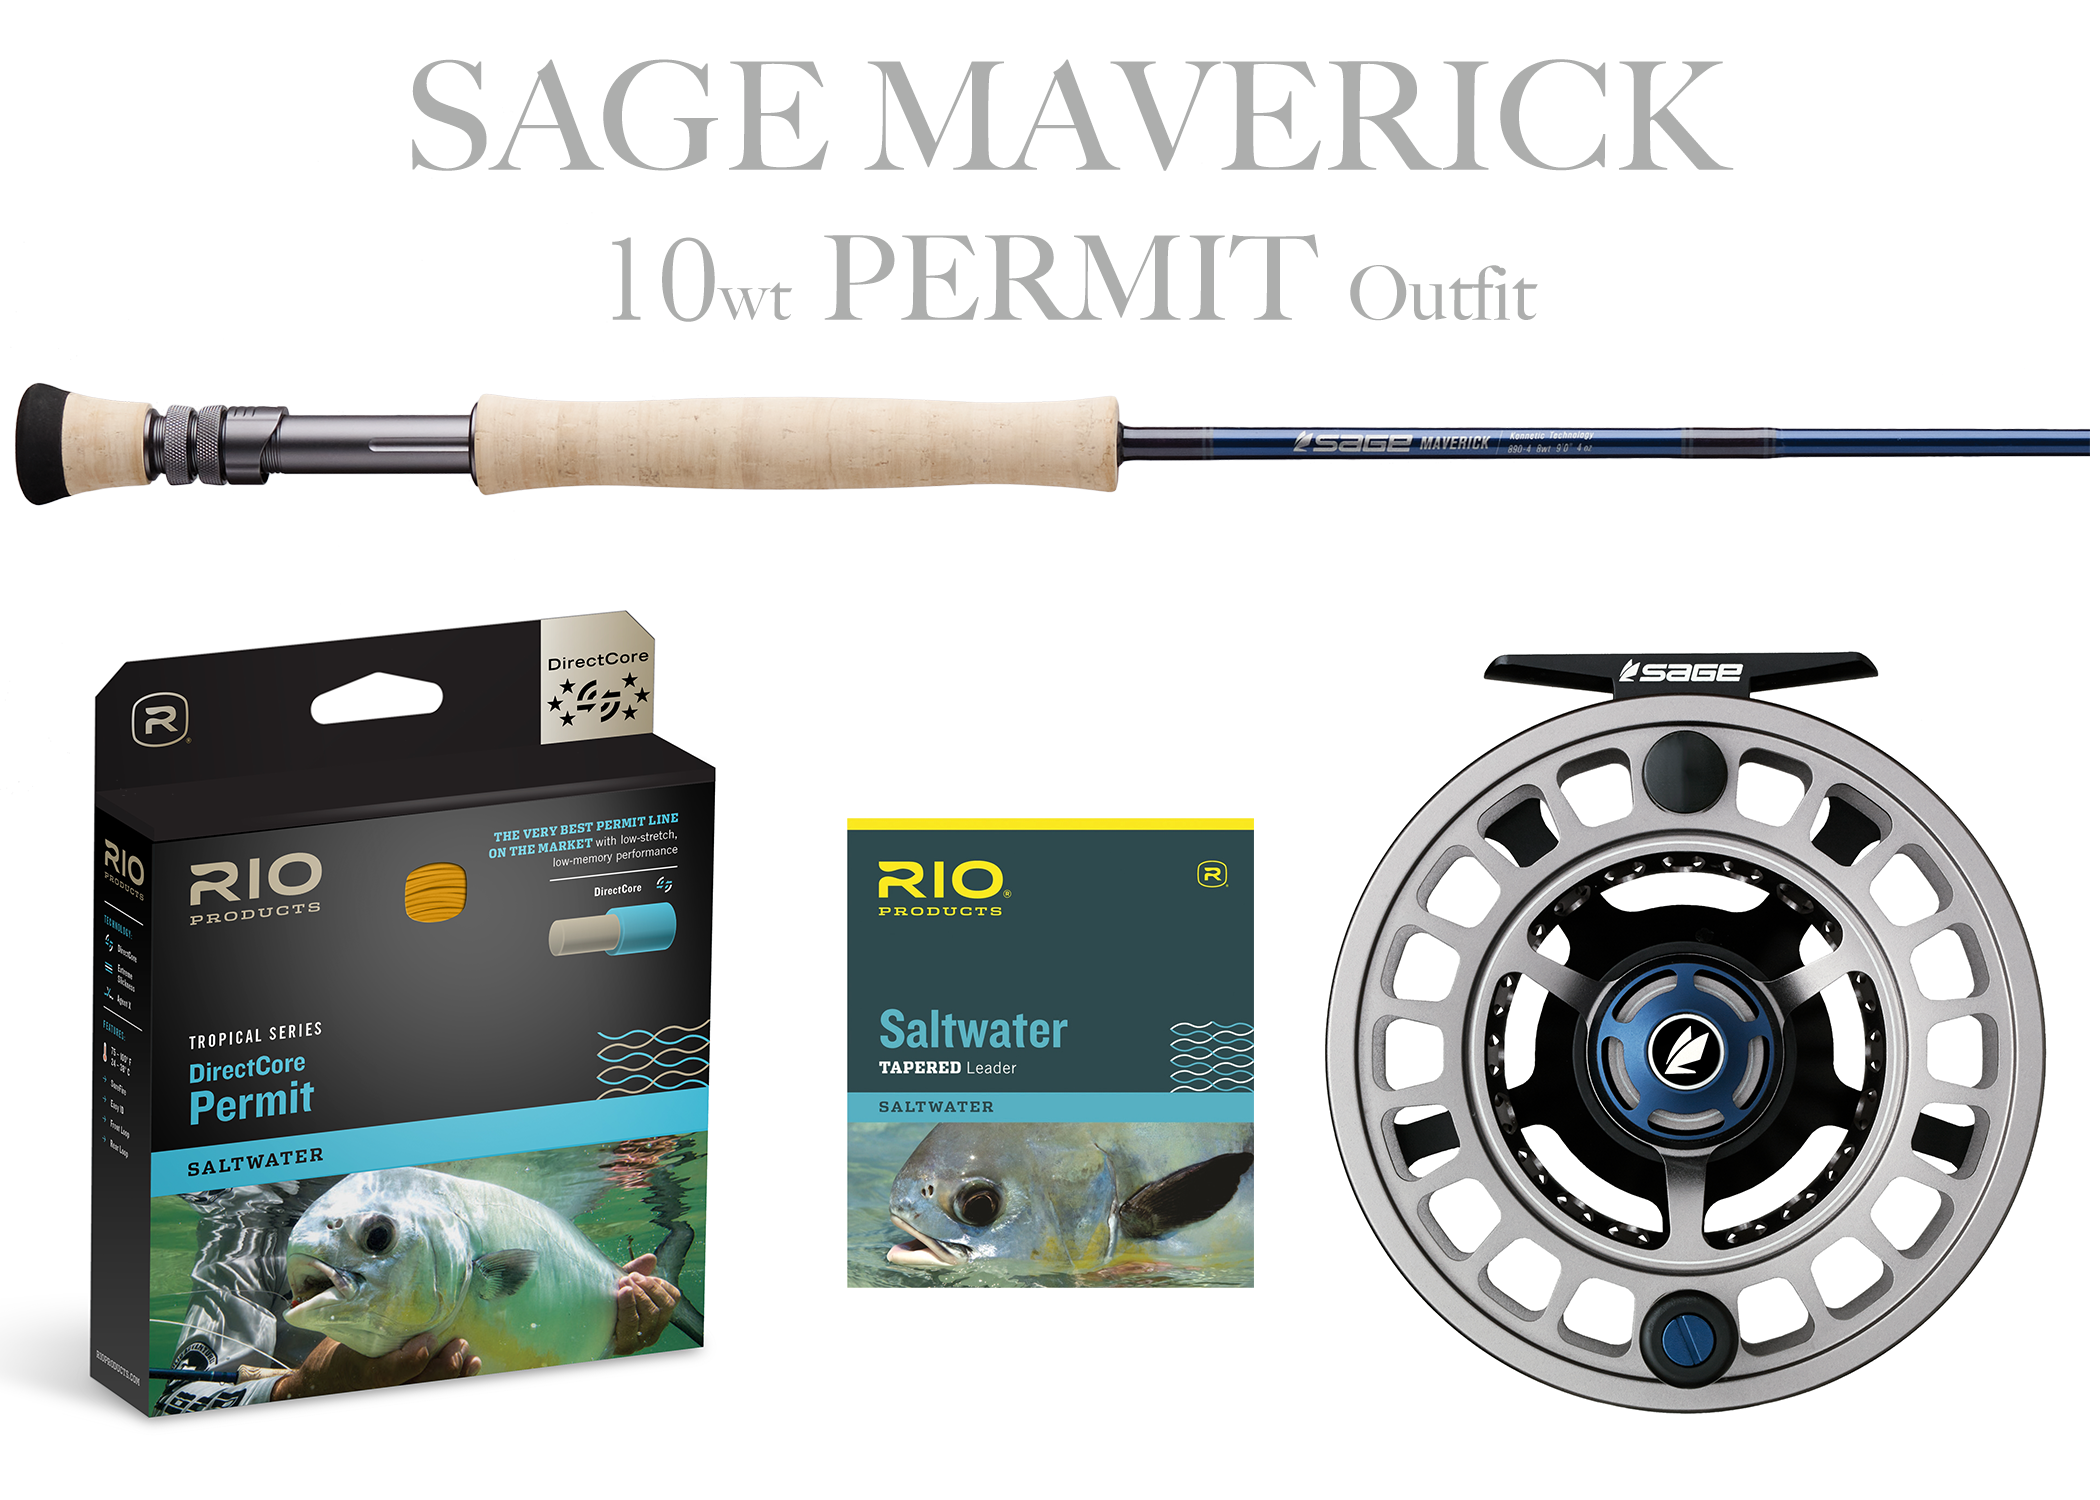 Sage MAVERICK Fly Rod - PERMIT Combo 10wt Fly Rod + Spectrum MAX Reel (9/10)